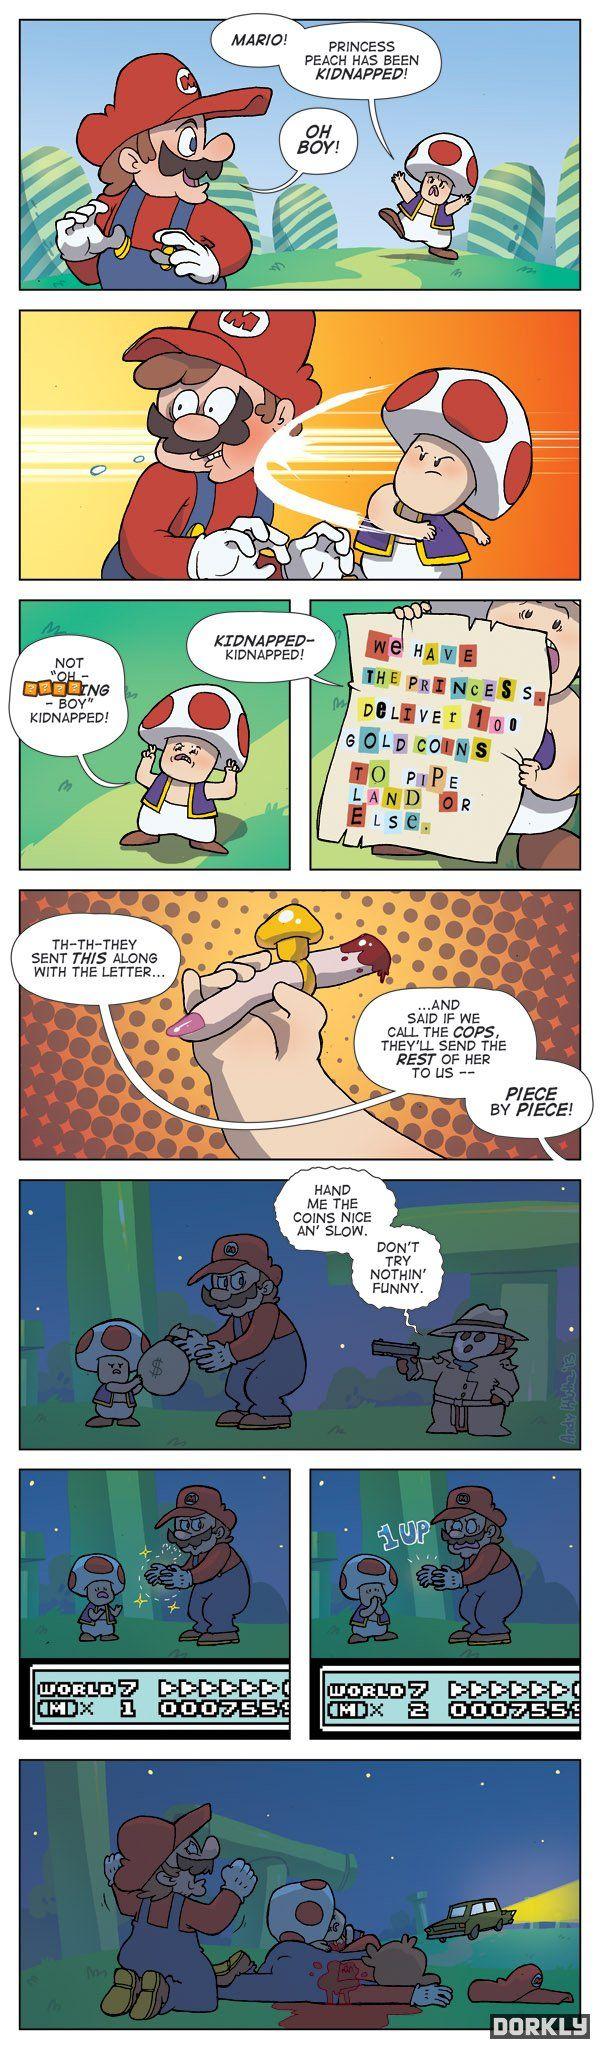 Not Another Castle - Dorkly Comic